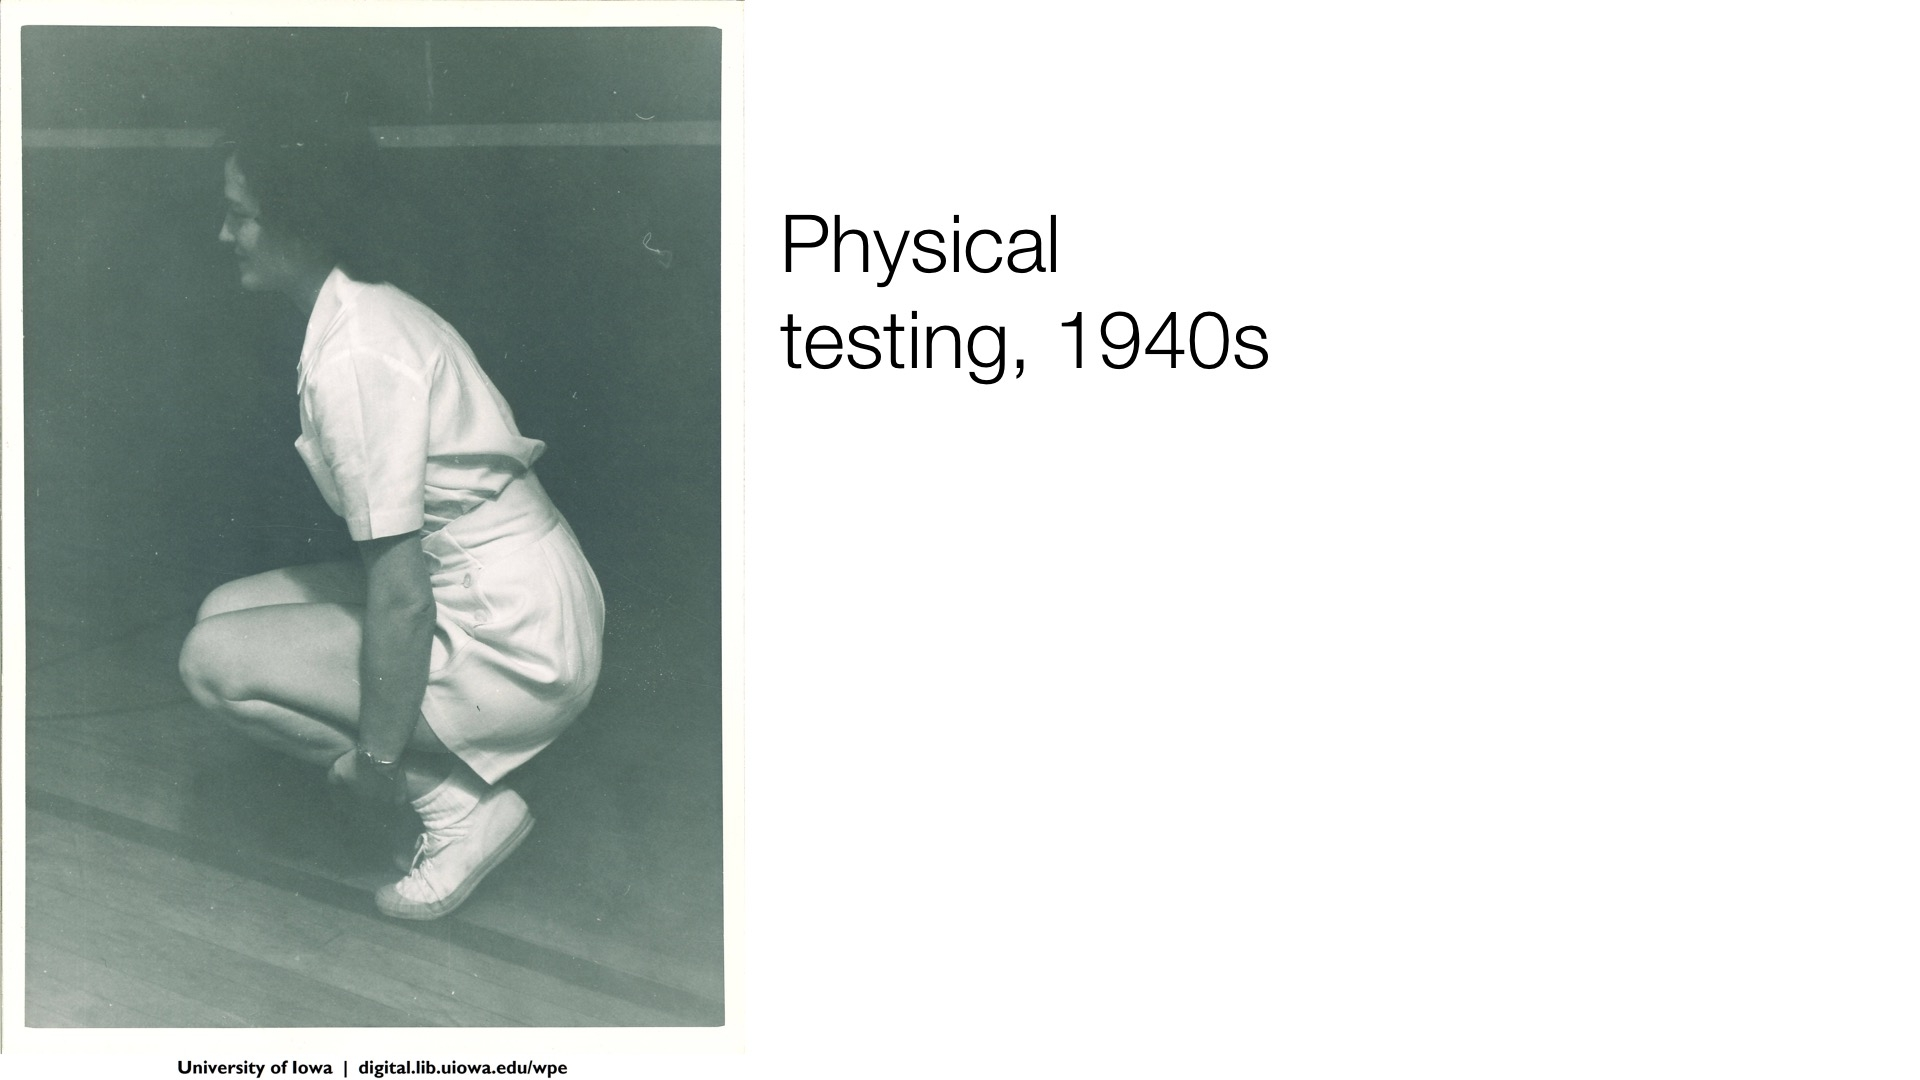 physical testing, 1940s